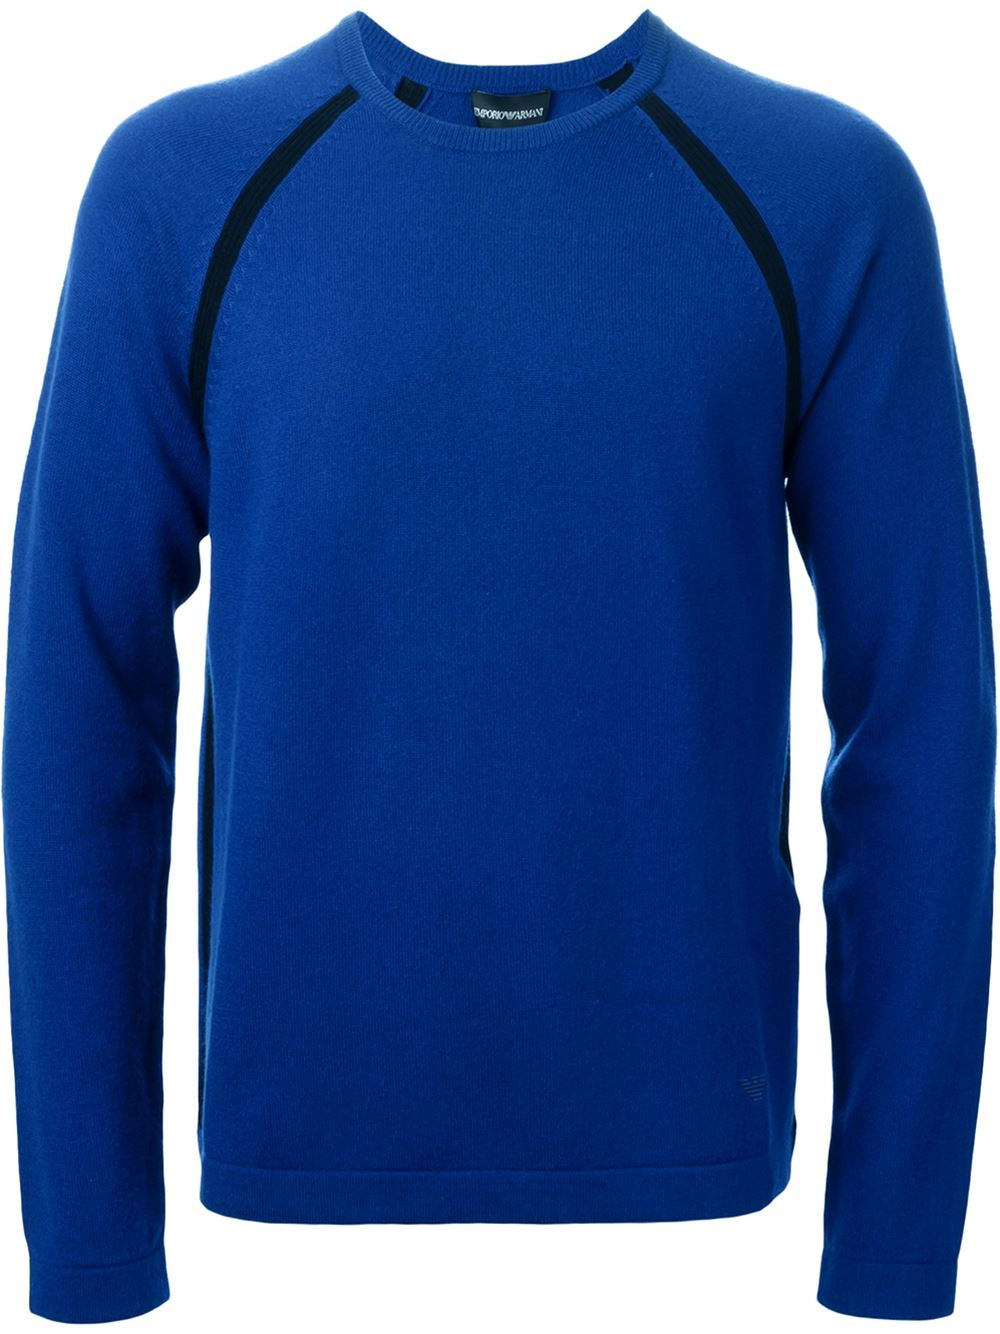 emporio armani crew neck sweater in blue for men lyst. Black Bedroom Furniture Sets. Home Design Ideas